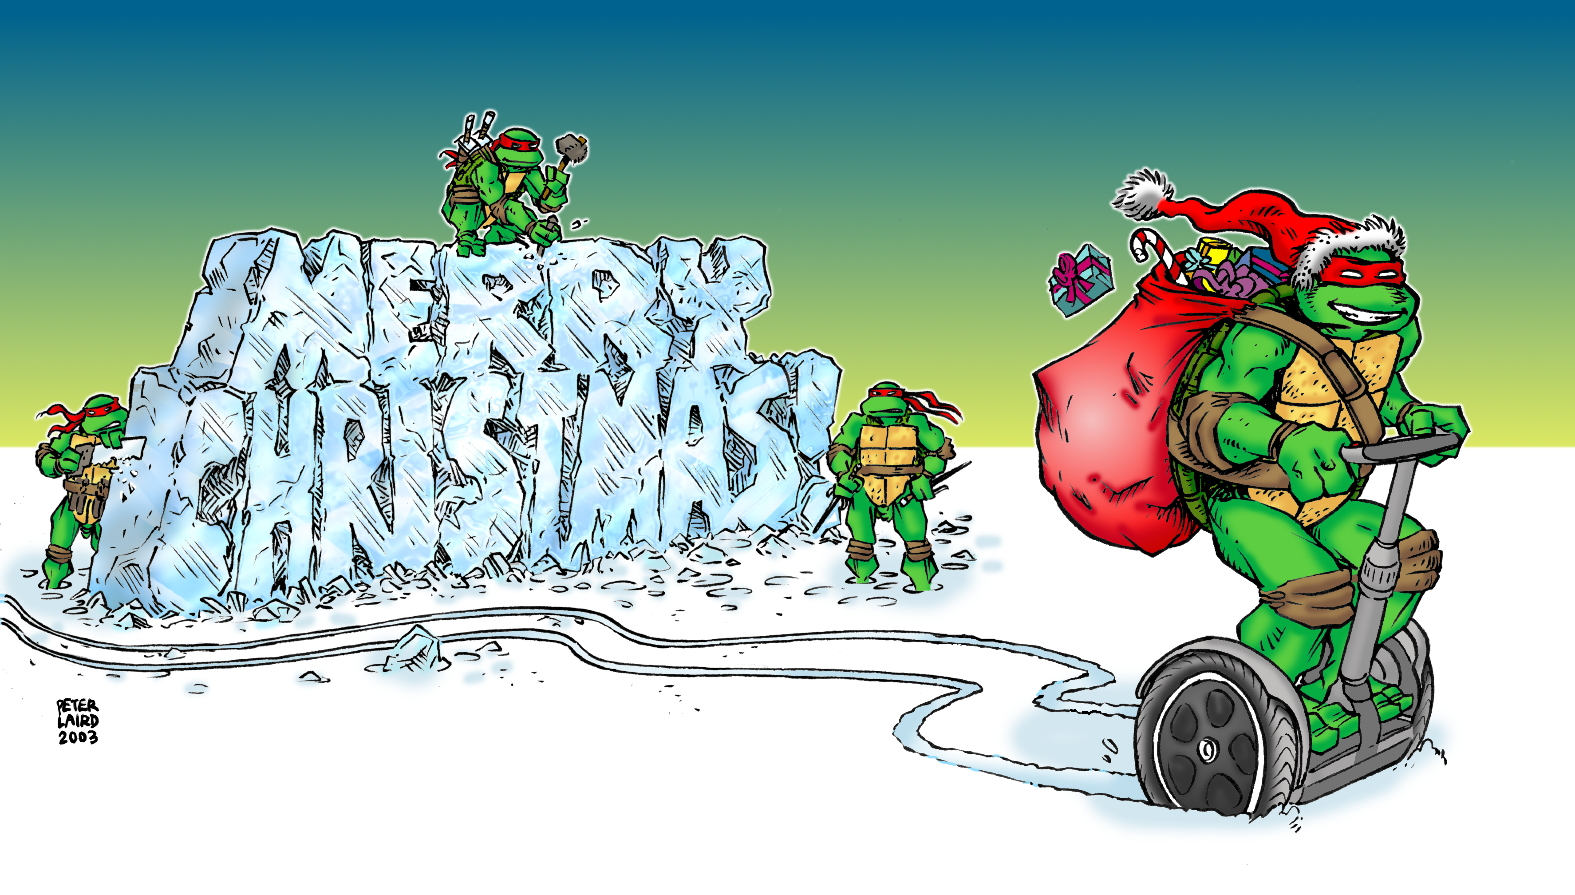 Peter Laird's TMNT blog: Blast from the Past #331: 2003 Christmas card